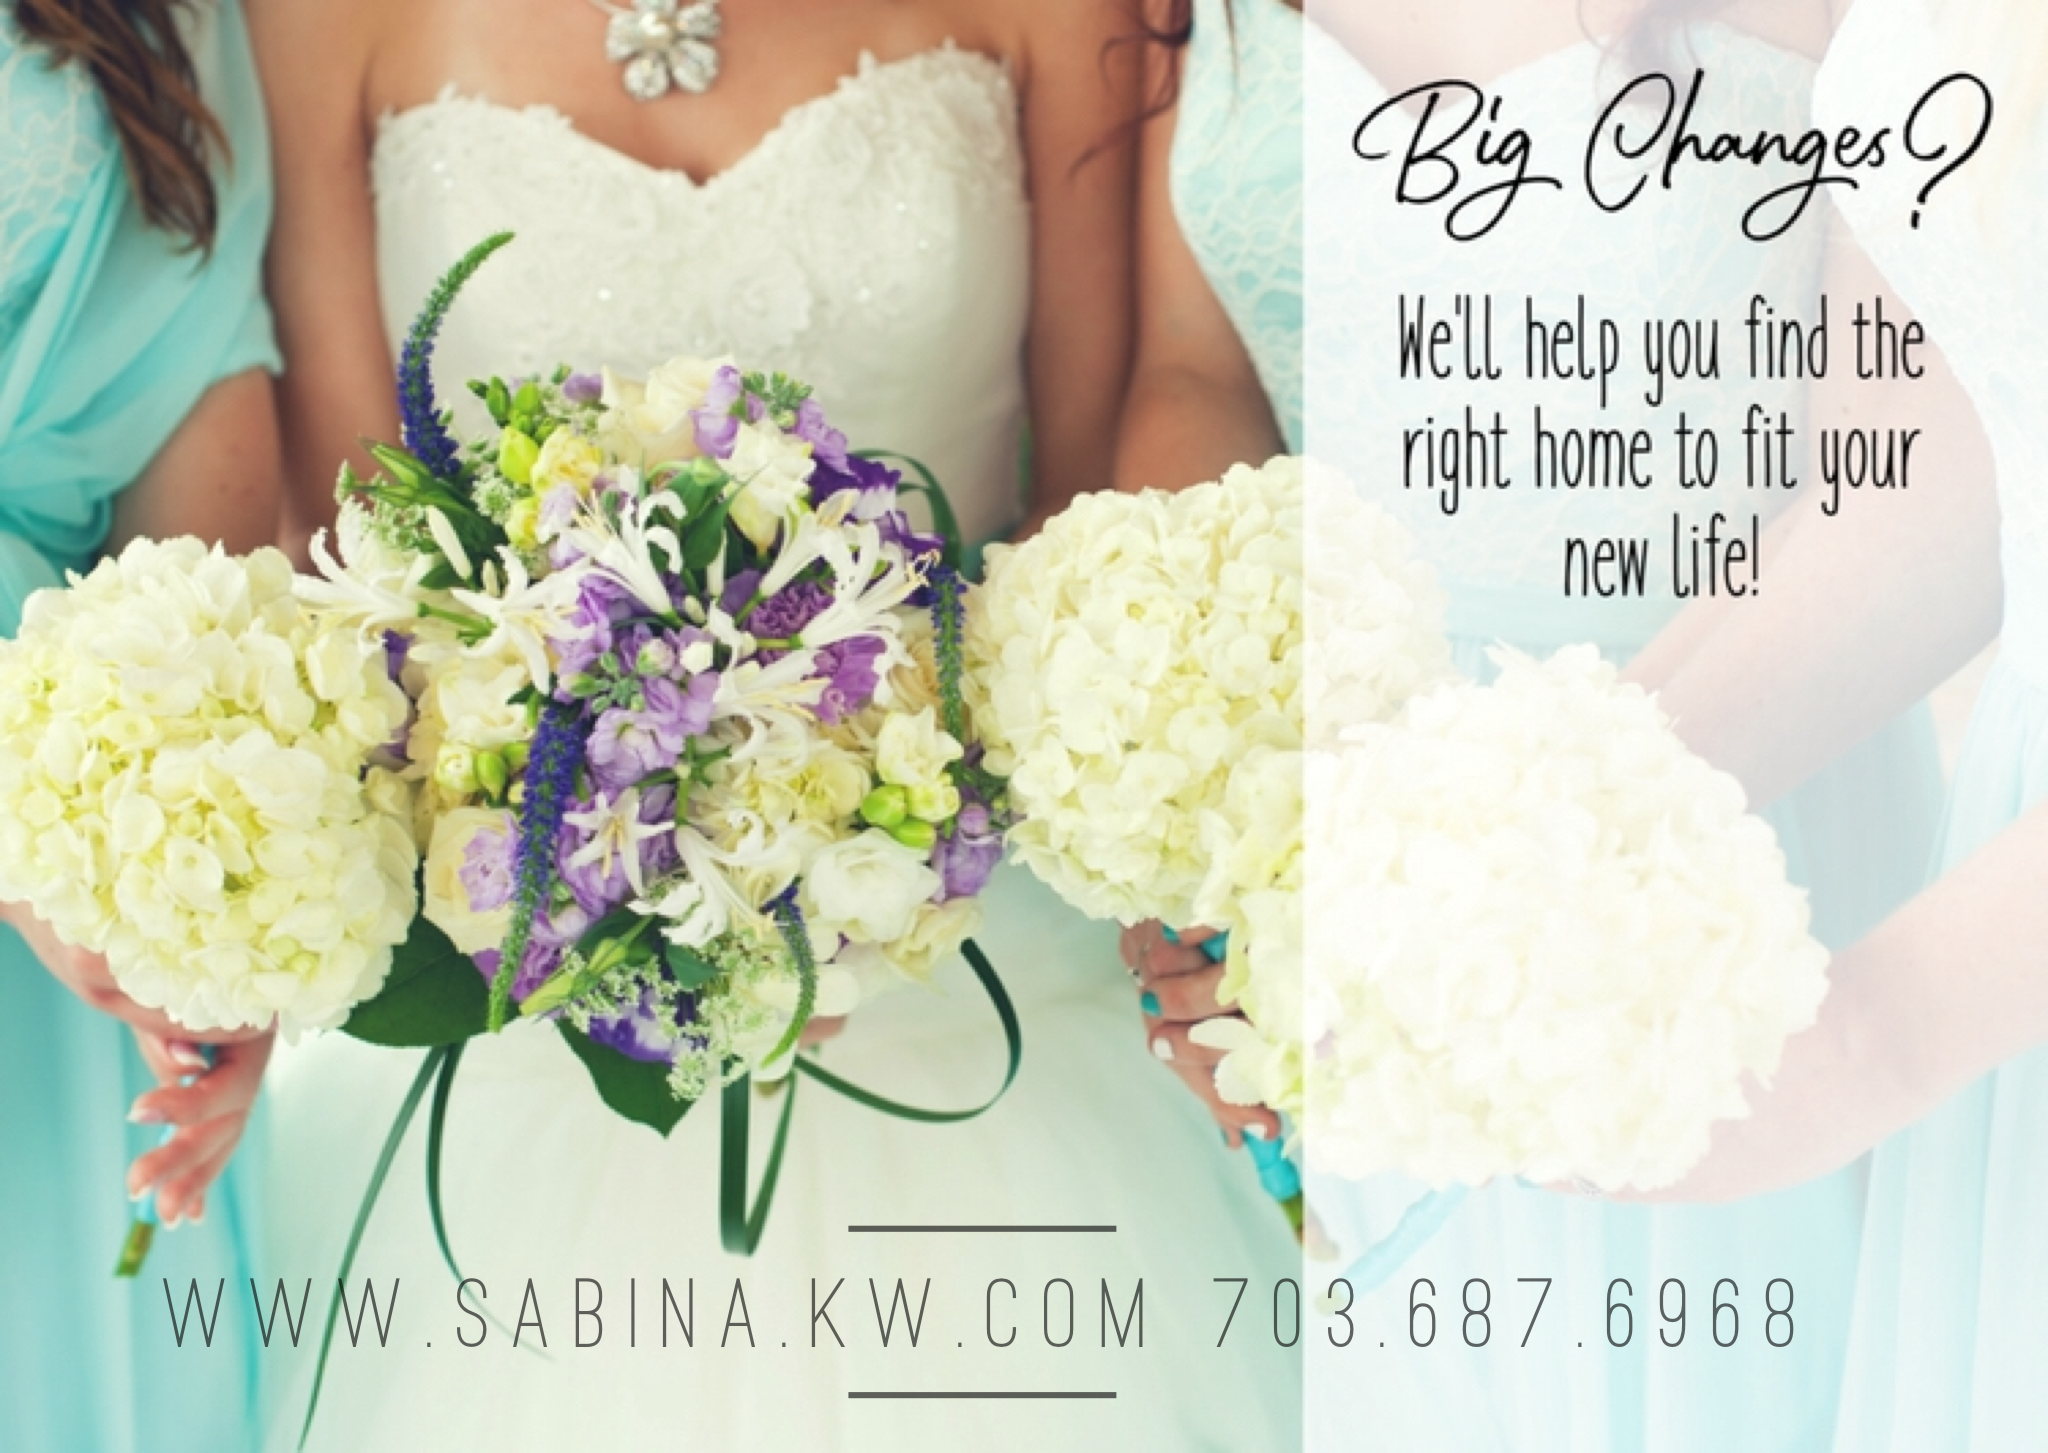 Let me find a home that suits you and your family. sabina@kw.com 703.687.6968 #fengshuirealtor #kw #Restonva #greatfallsva #mcleanva #fairfaxva #sellingwithsoul#reinvestments #realtor #buysell #sabinaatkwdotcom #listingagent #buyingagent #sellinghomes#buyinghomes #investor #buyhold #flip #restonkwrocks #kw #loverealestate #callsabina #Ilovewhatido #happyclientsismyultimategoal